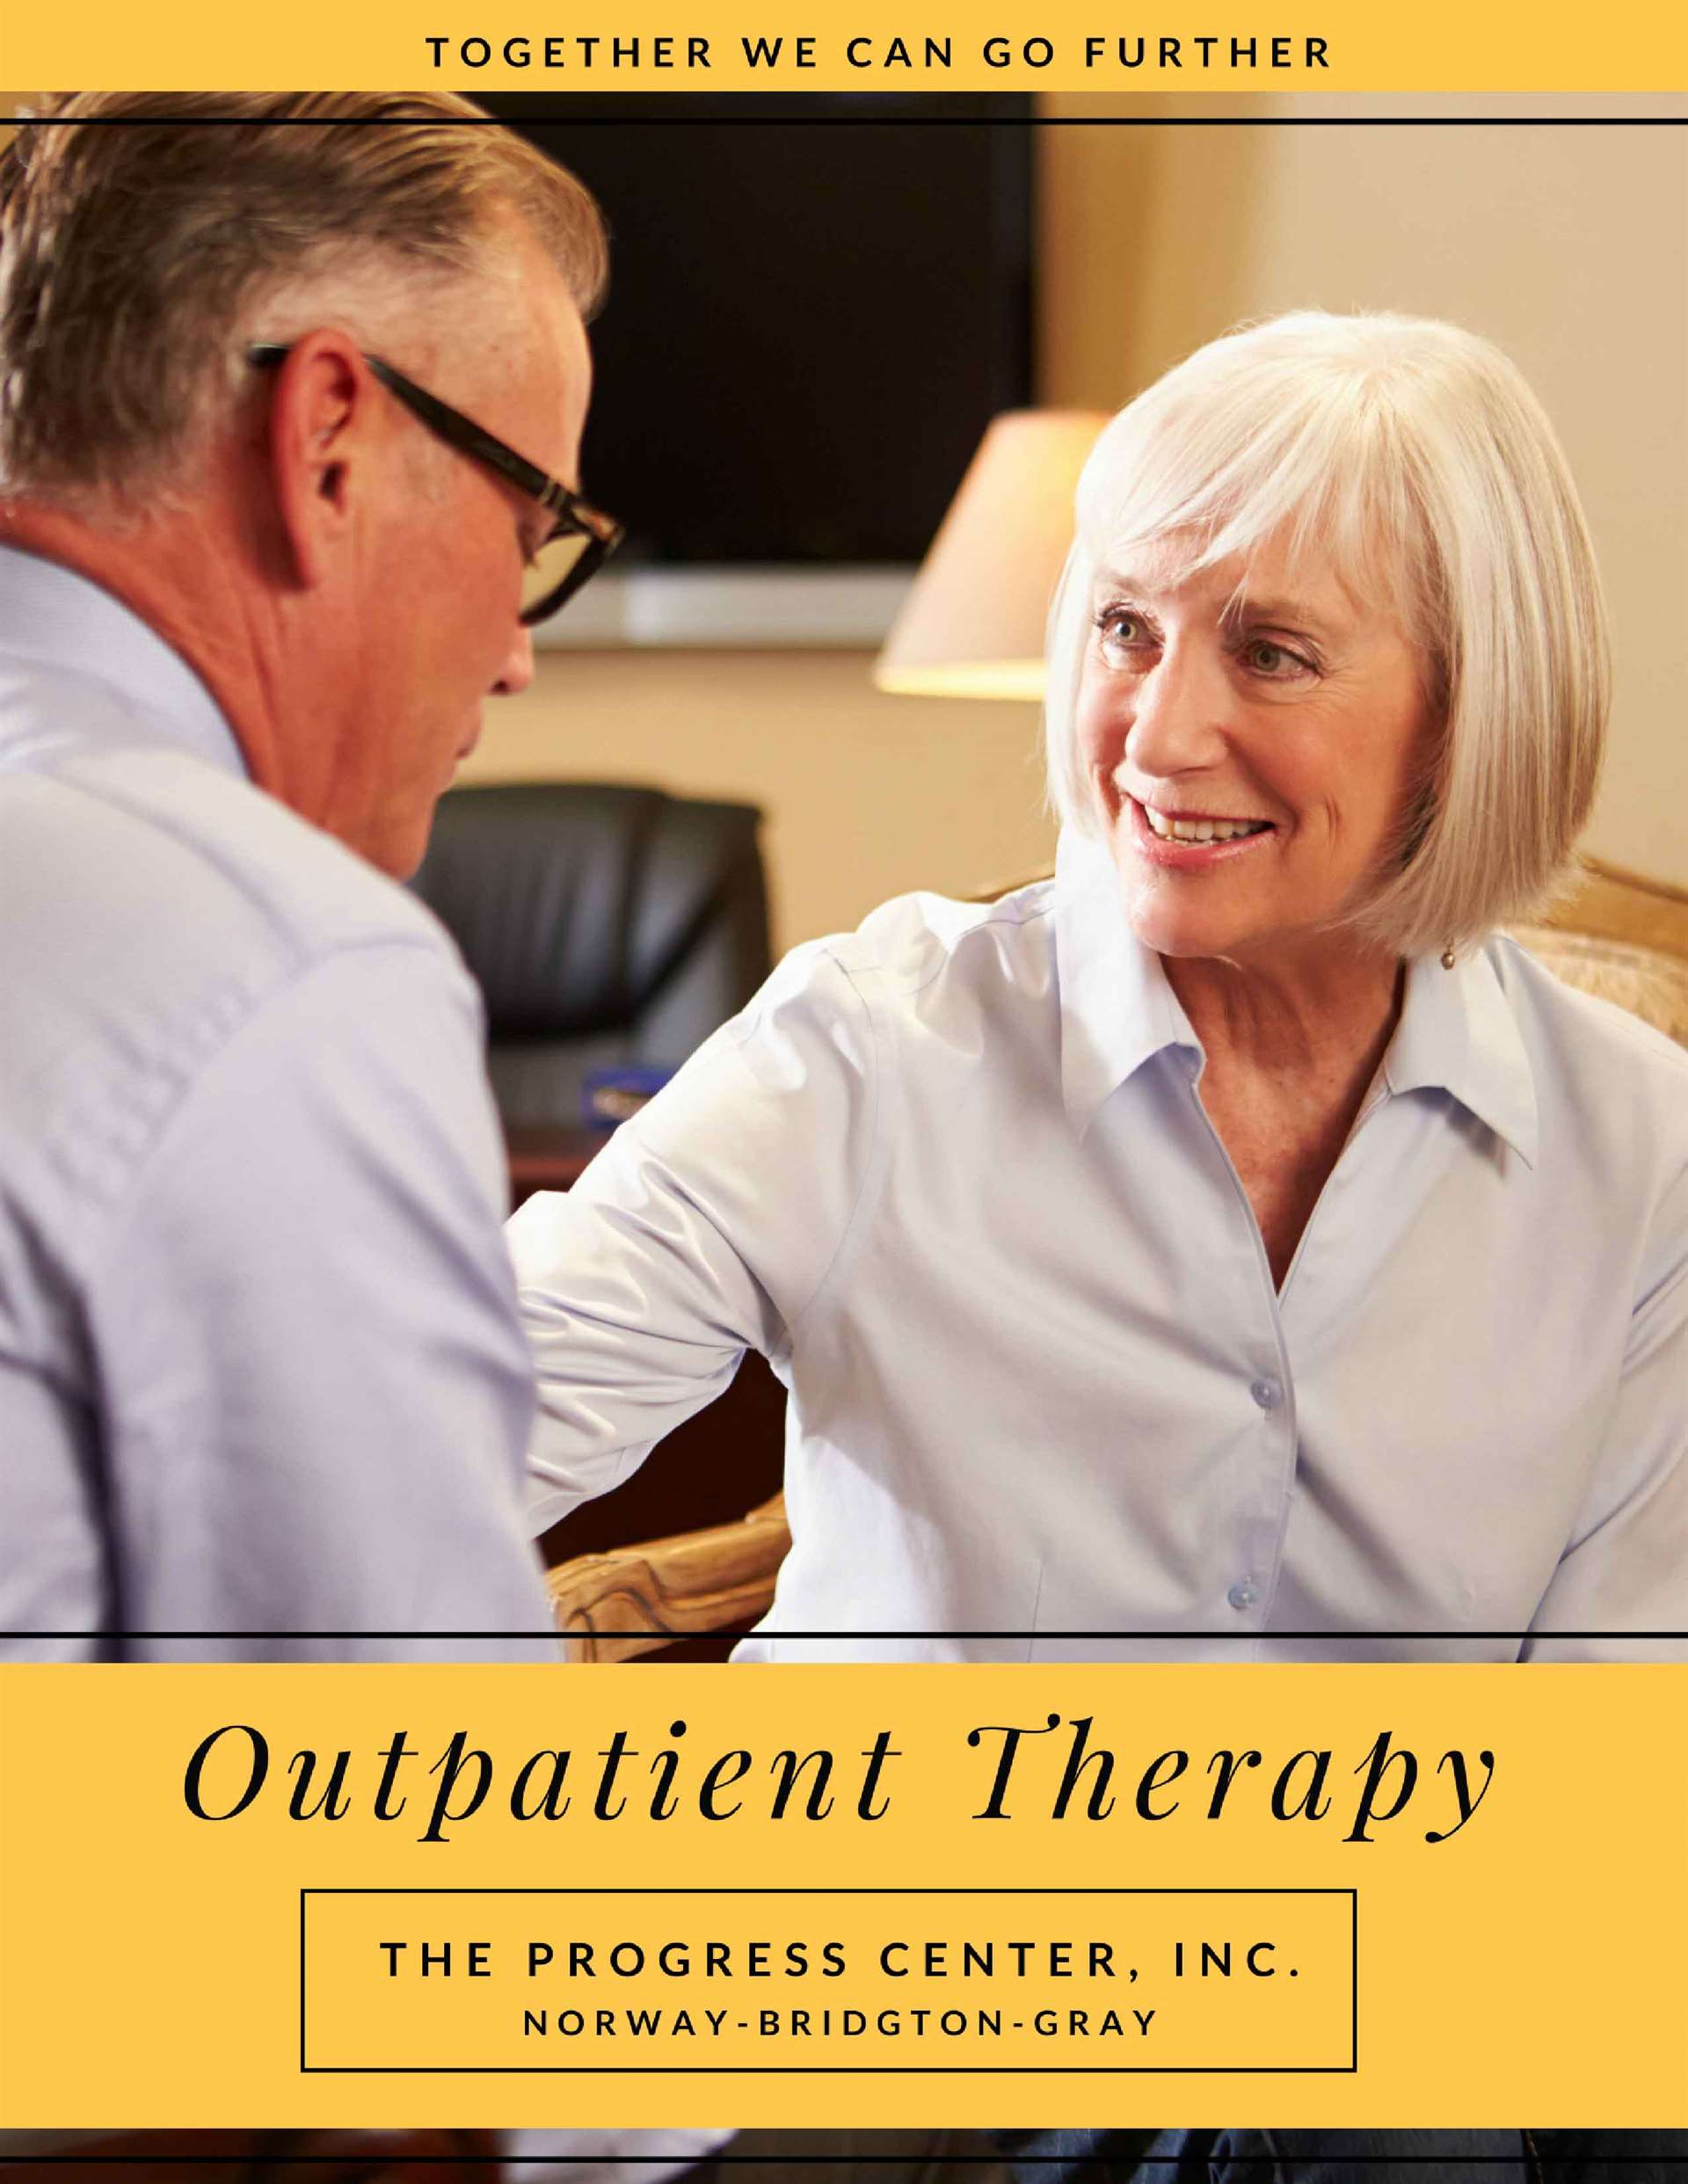 Outpatient Therapy Services The Progress Center